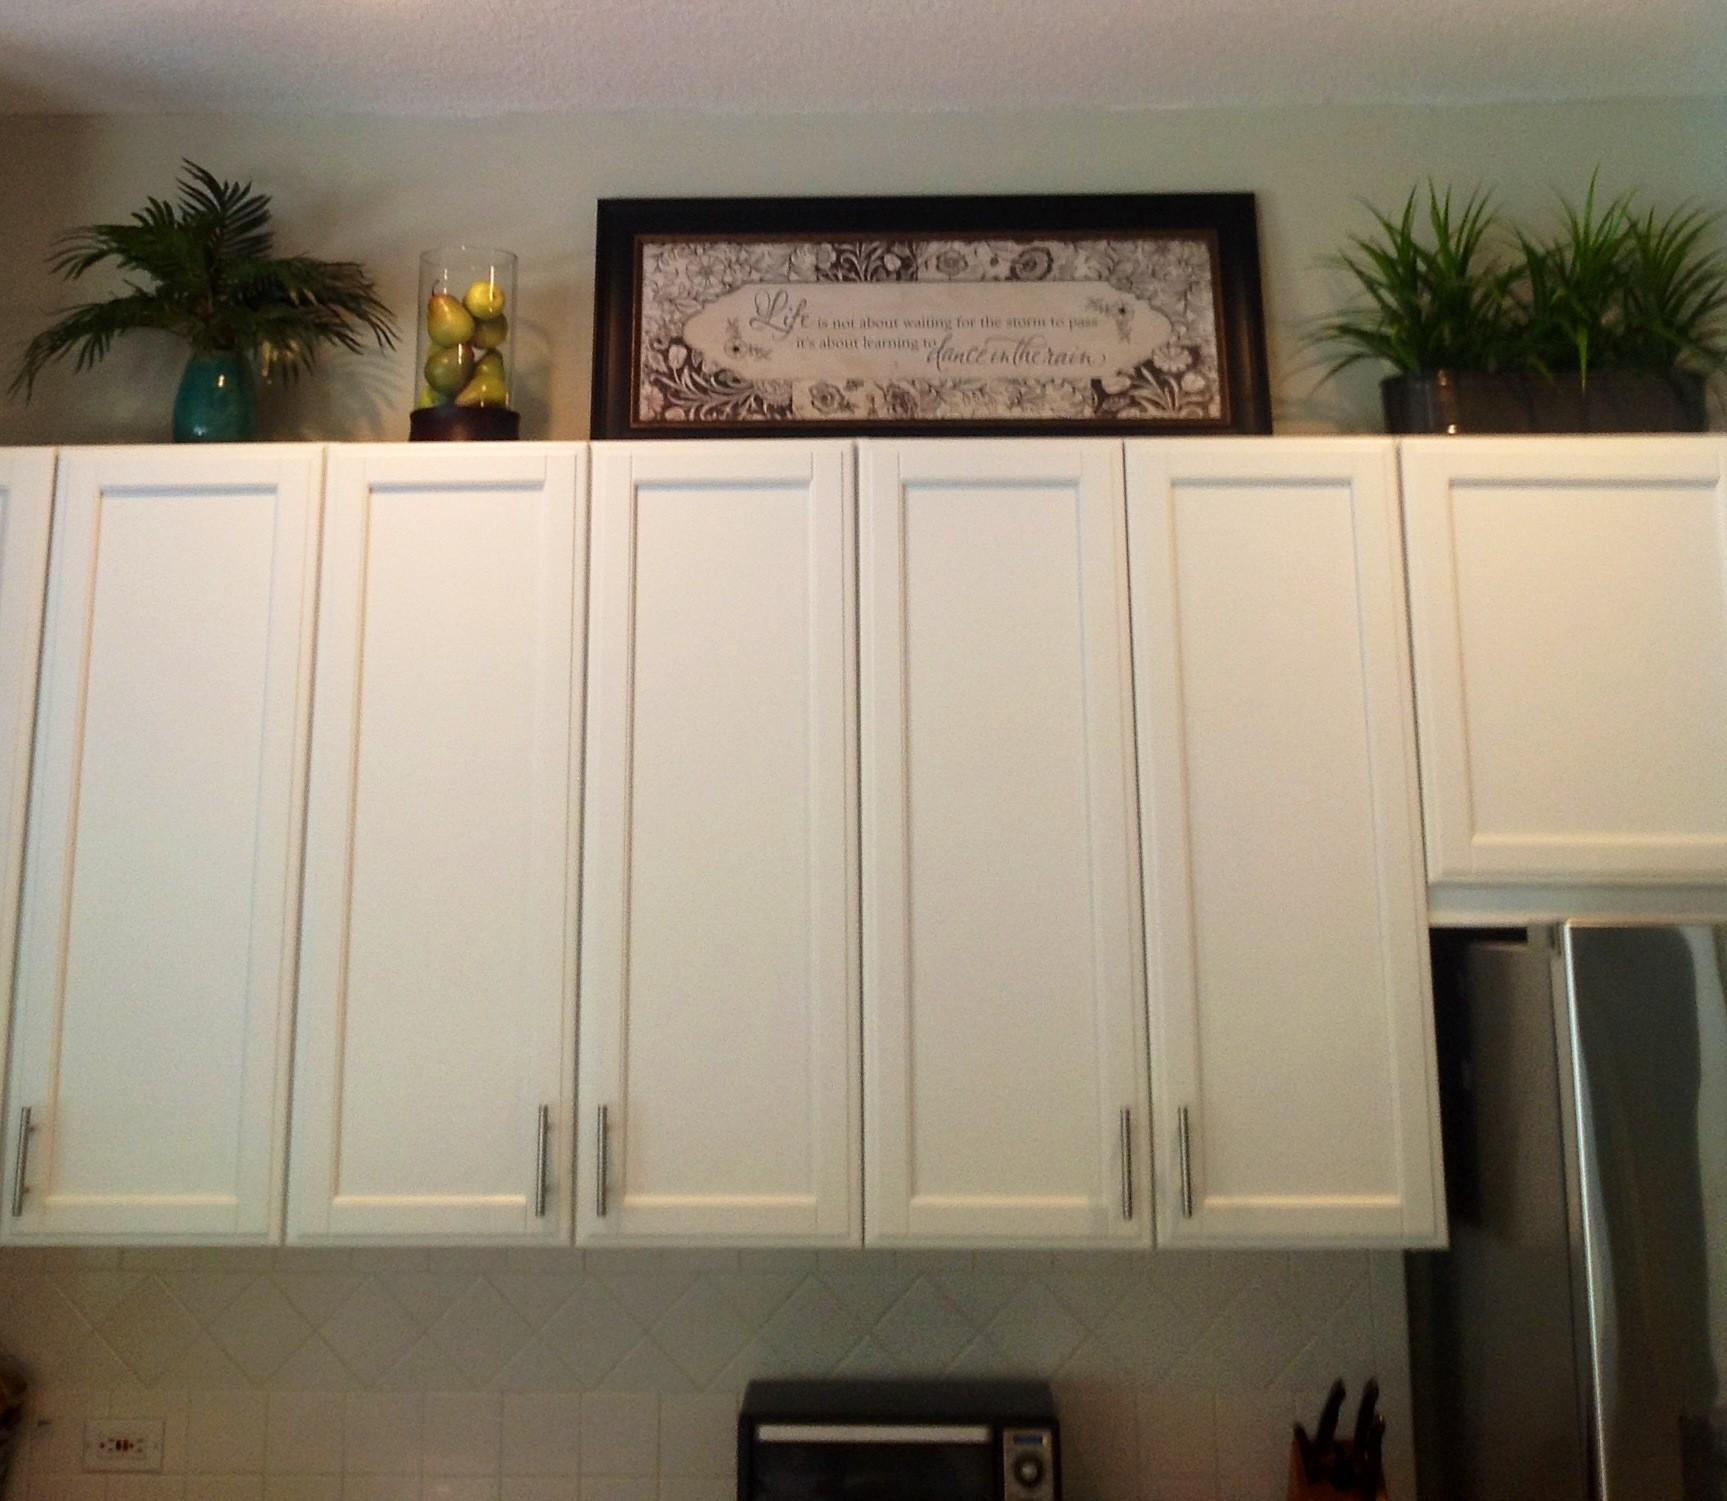 Enjoyable Wall Mounted Paint Cabinets White Doors